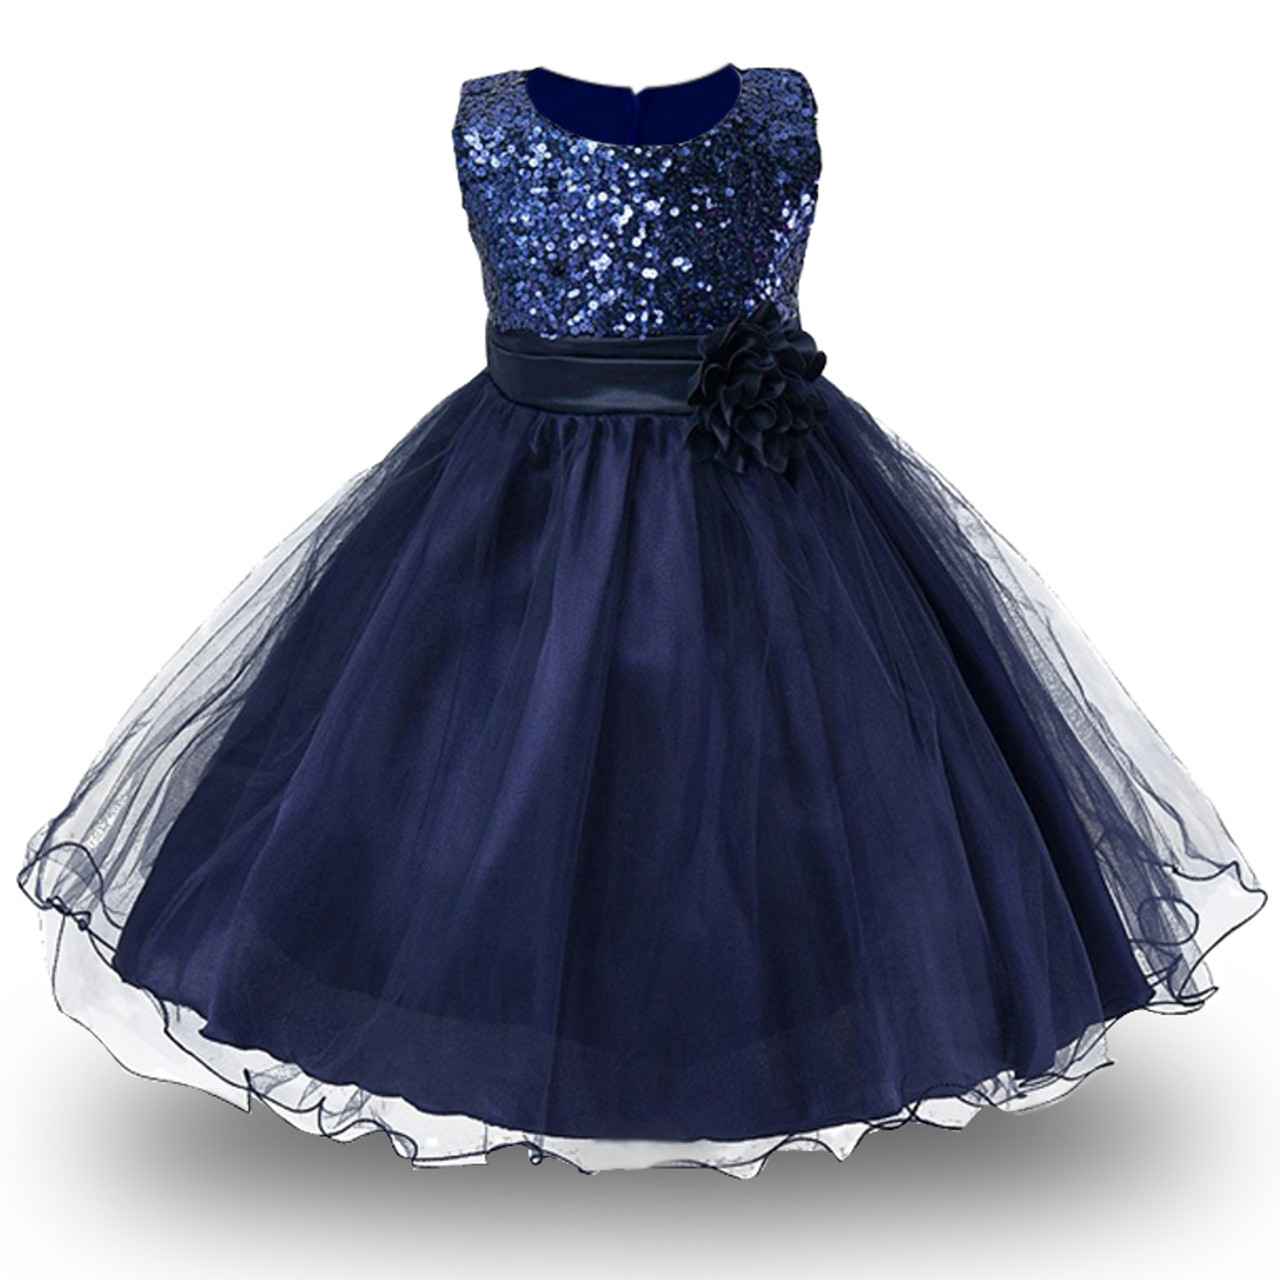 bb35c89585691 3-14yrs teenagers Girls Dress Wedding Party Princess Christmas Dresse for  girl Party Costume Kids Cotton Party girls Clothing